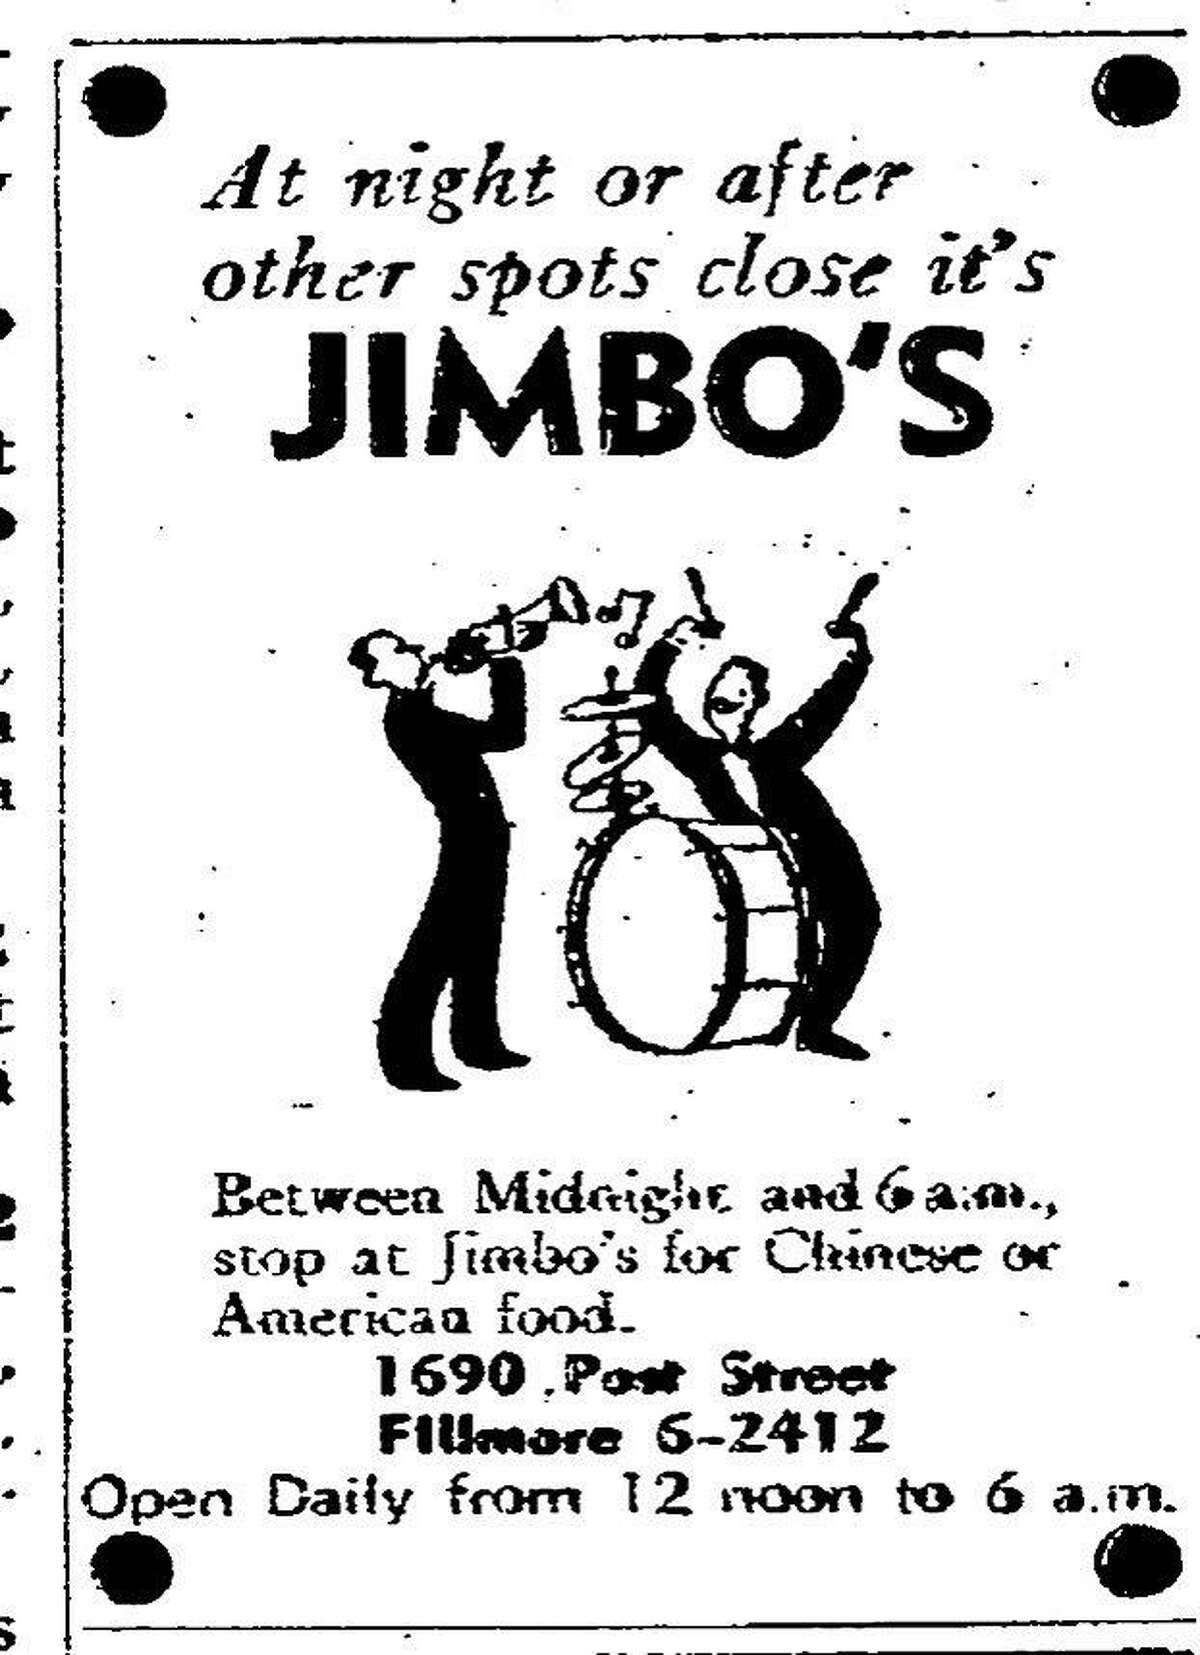 A May 17, 1954 Chronicle ad for Jimbo's Bop City, a popular jazz club that closed in 1965 located at 1690 Post St.,